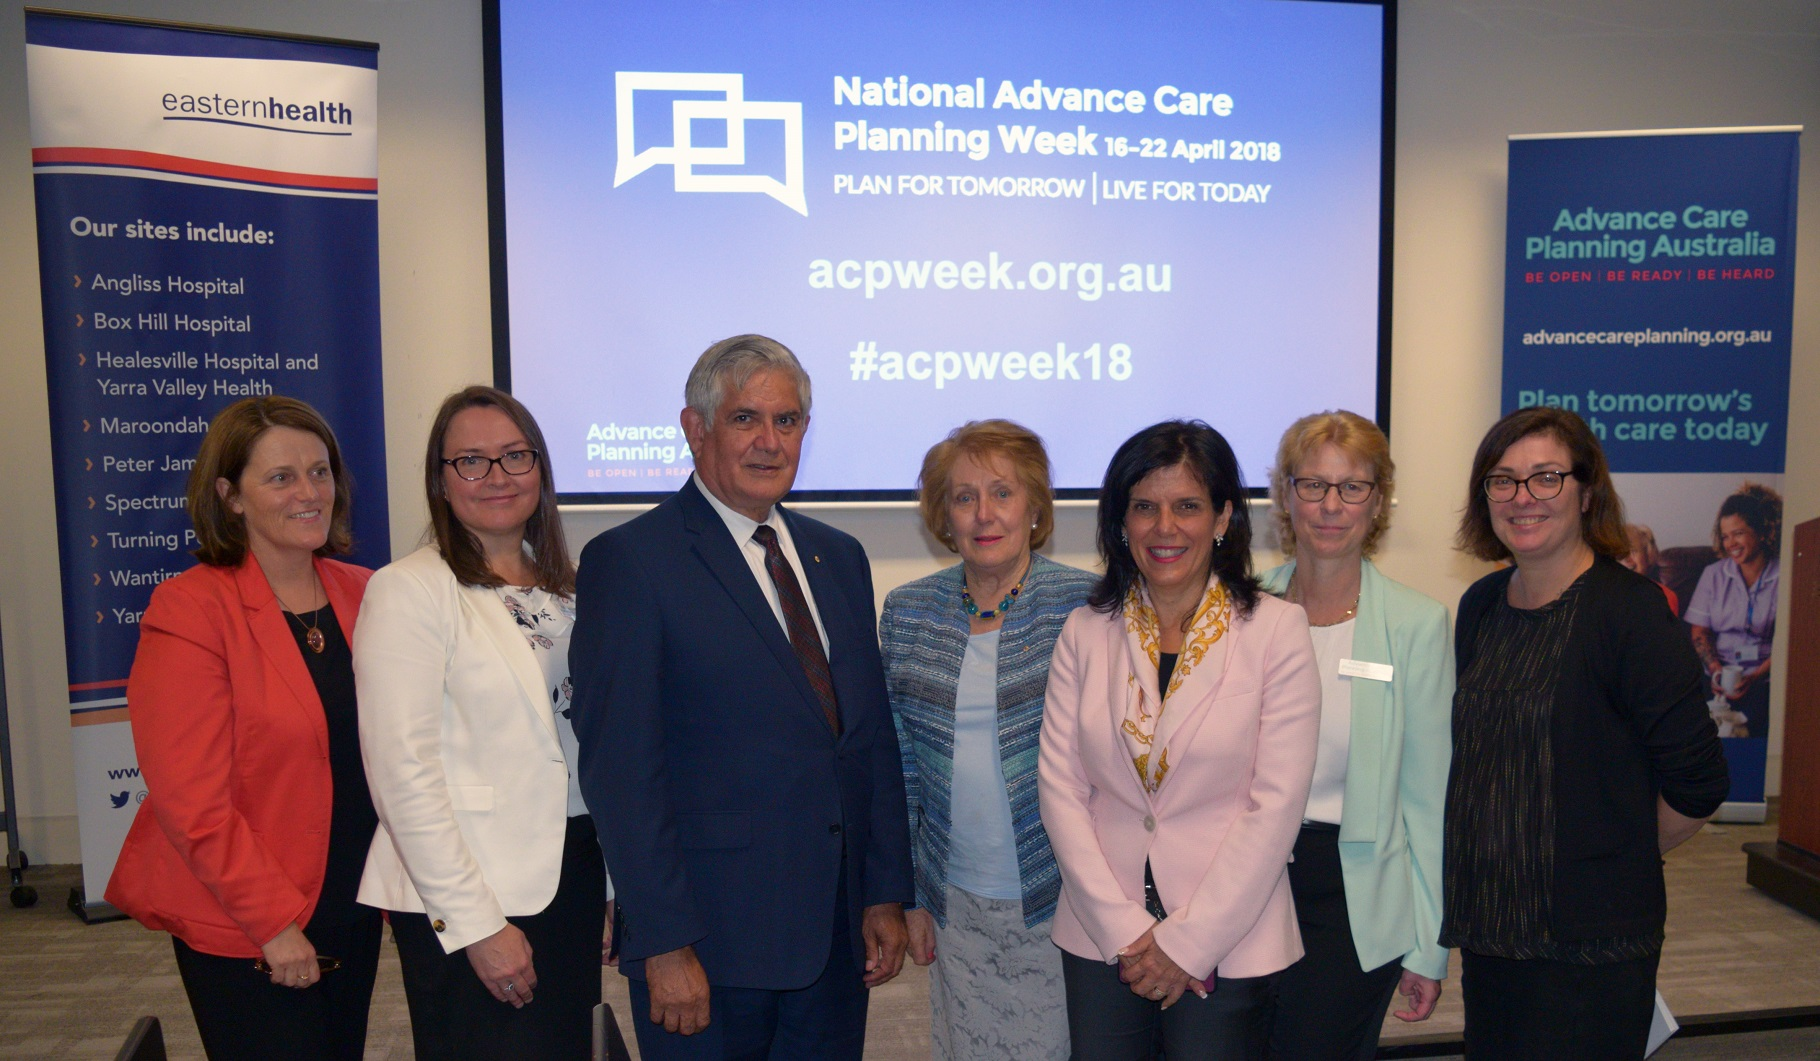 National Advance Care Planning Week launch at Eastern Health in Box Hill.